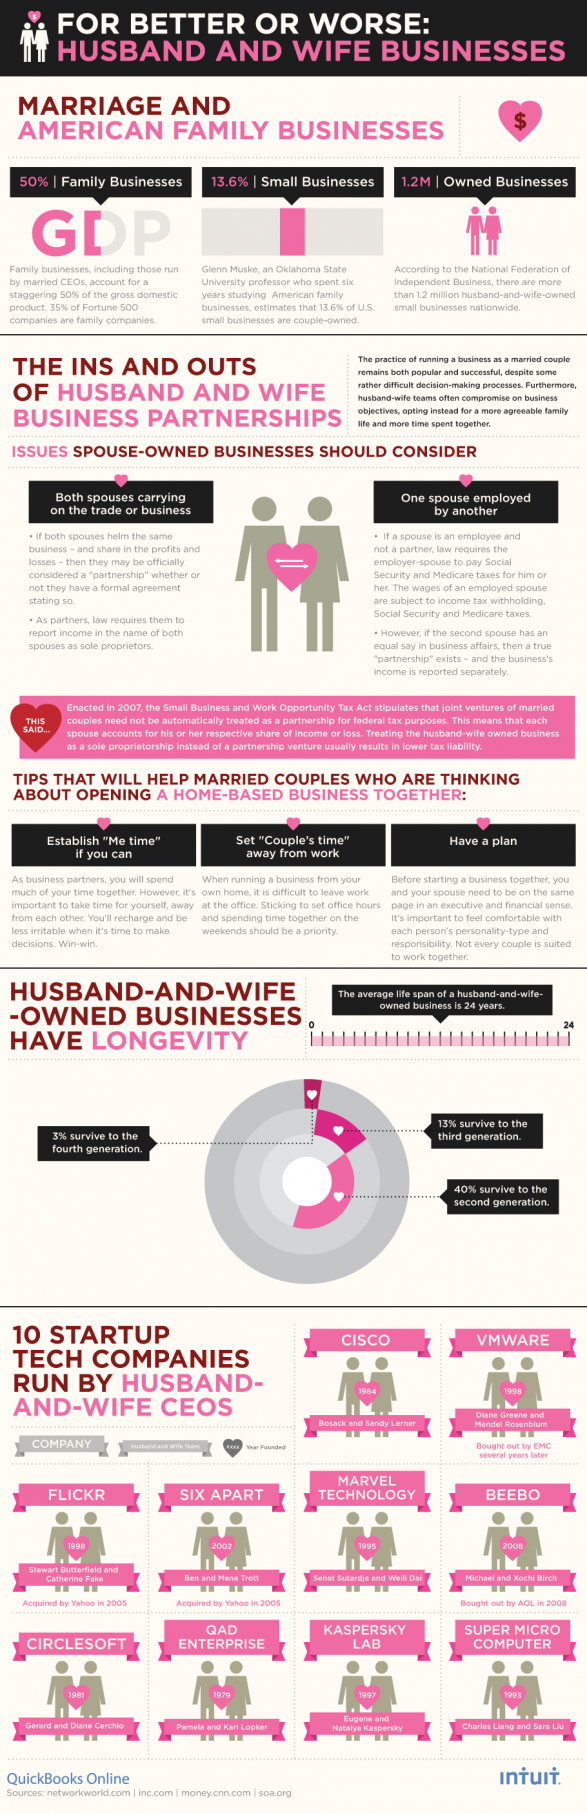 For Better or Worse: Husband and Wife Businesses